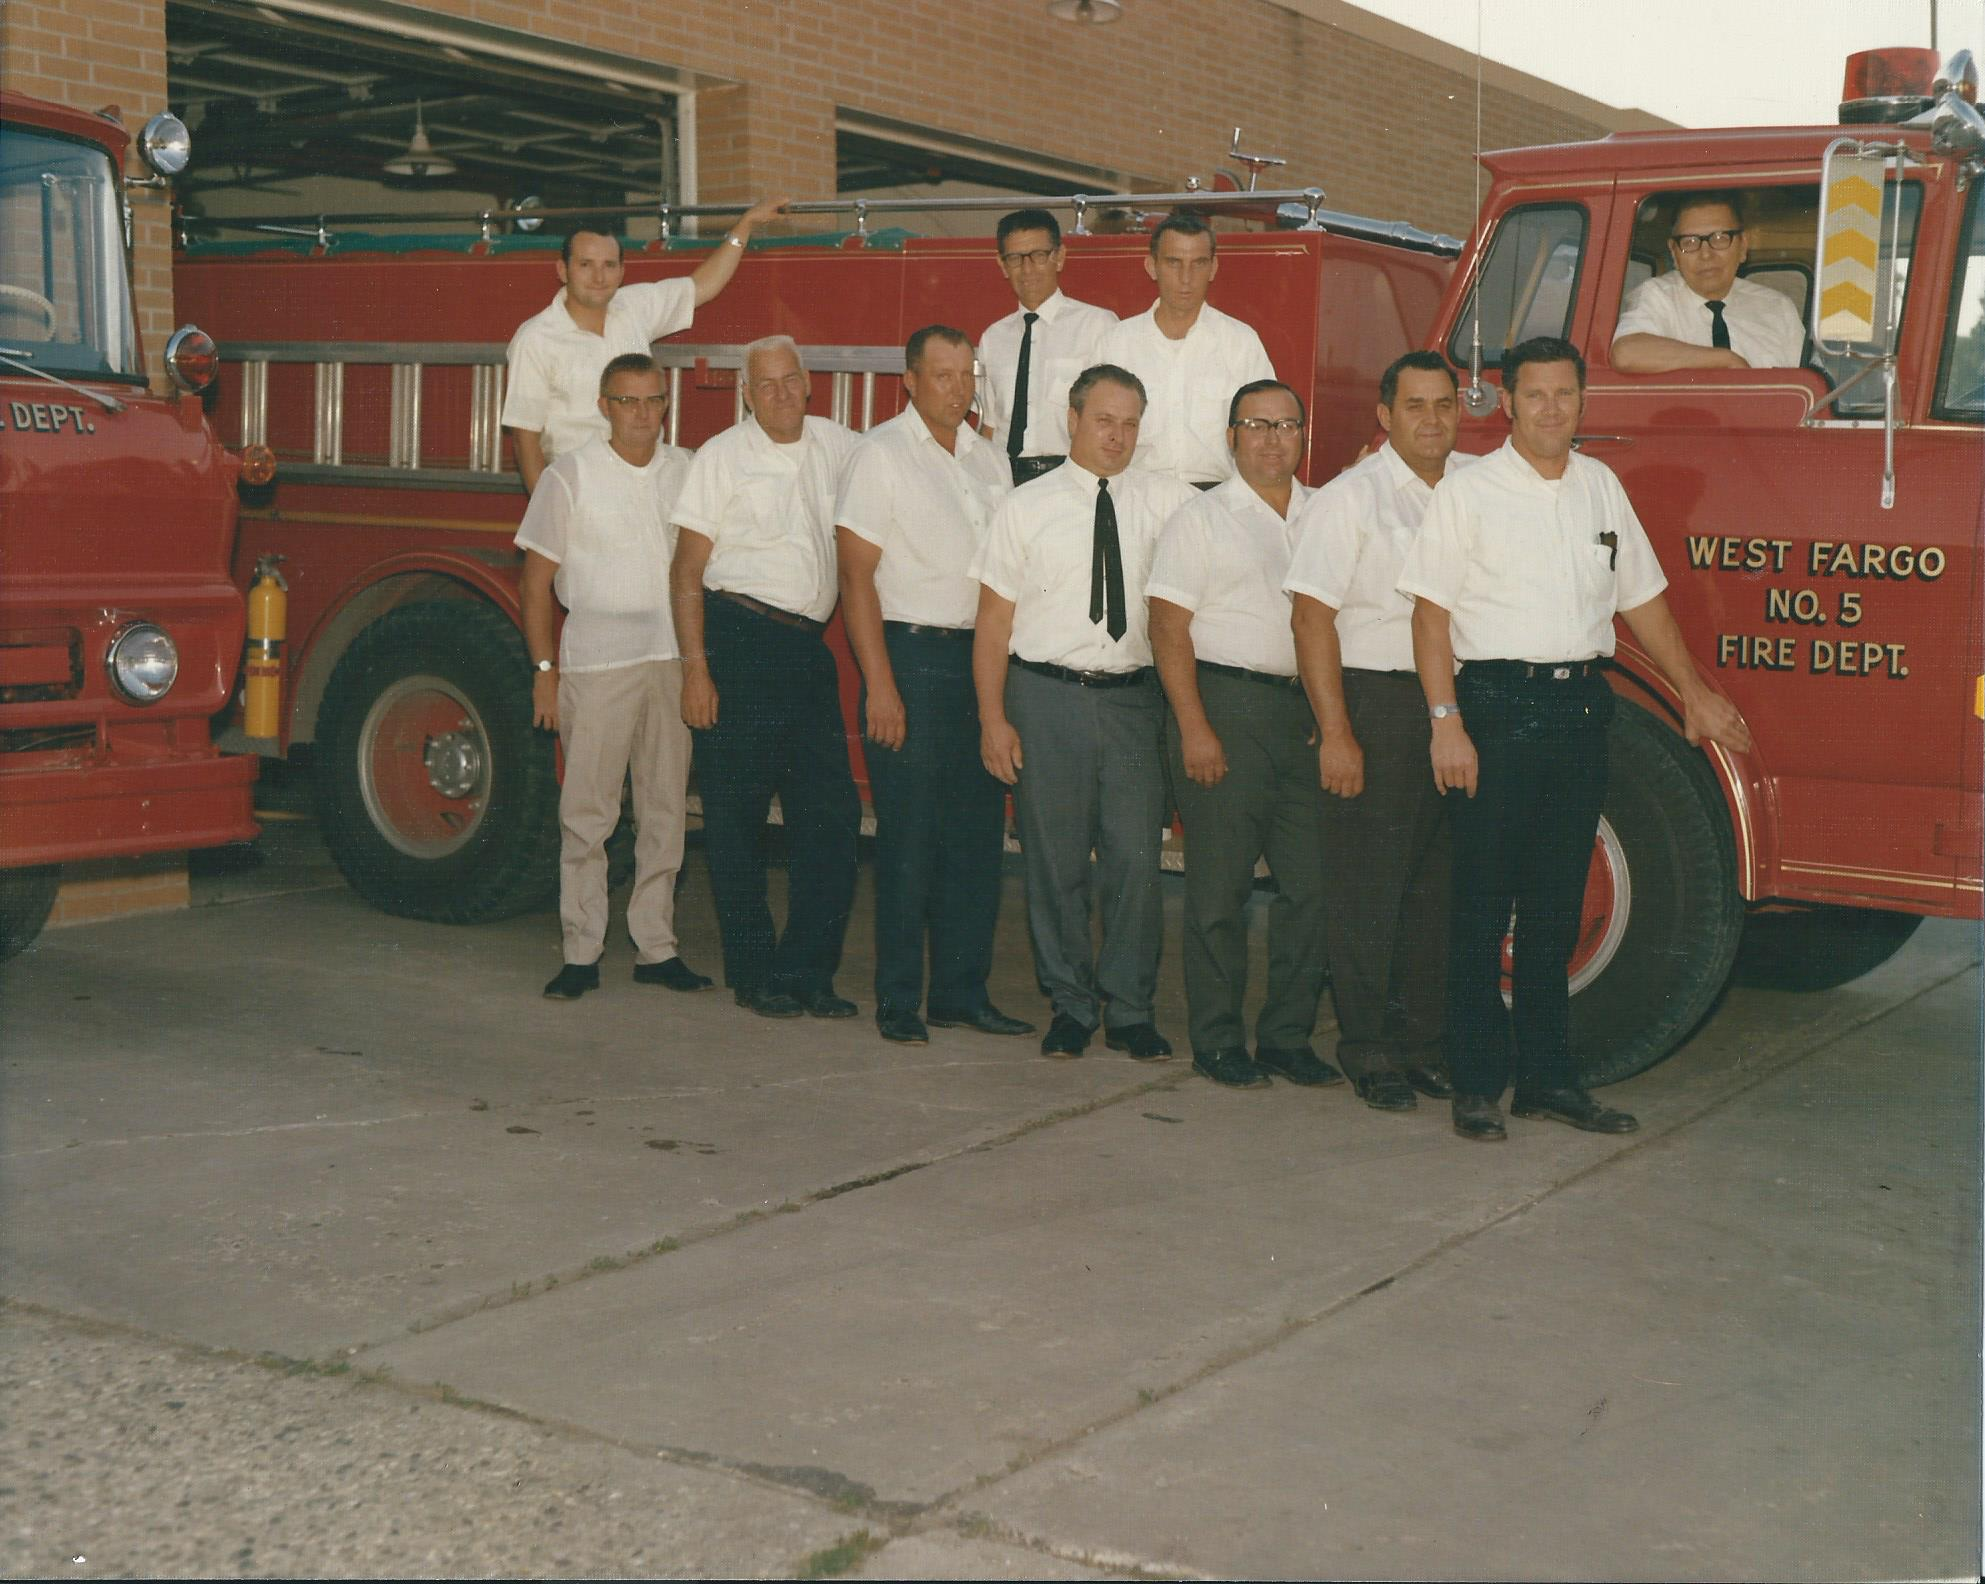 West Fargo Fire Dept, 1970's